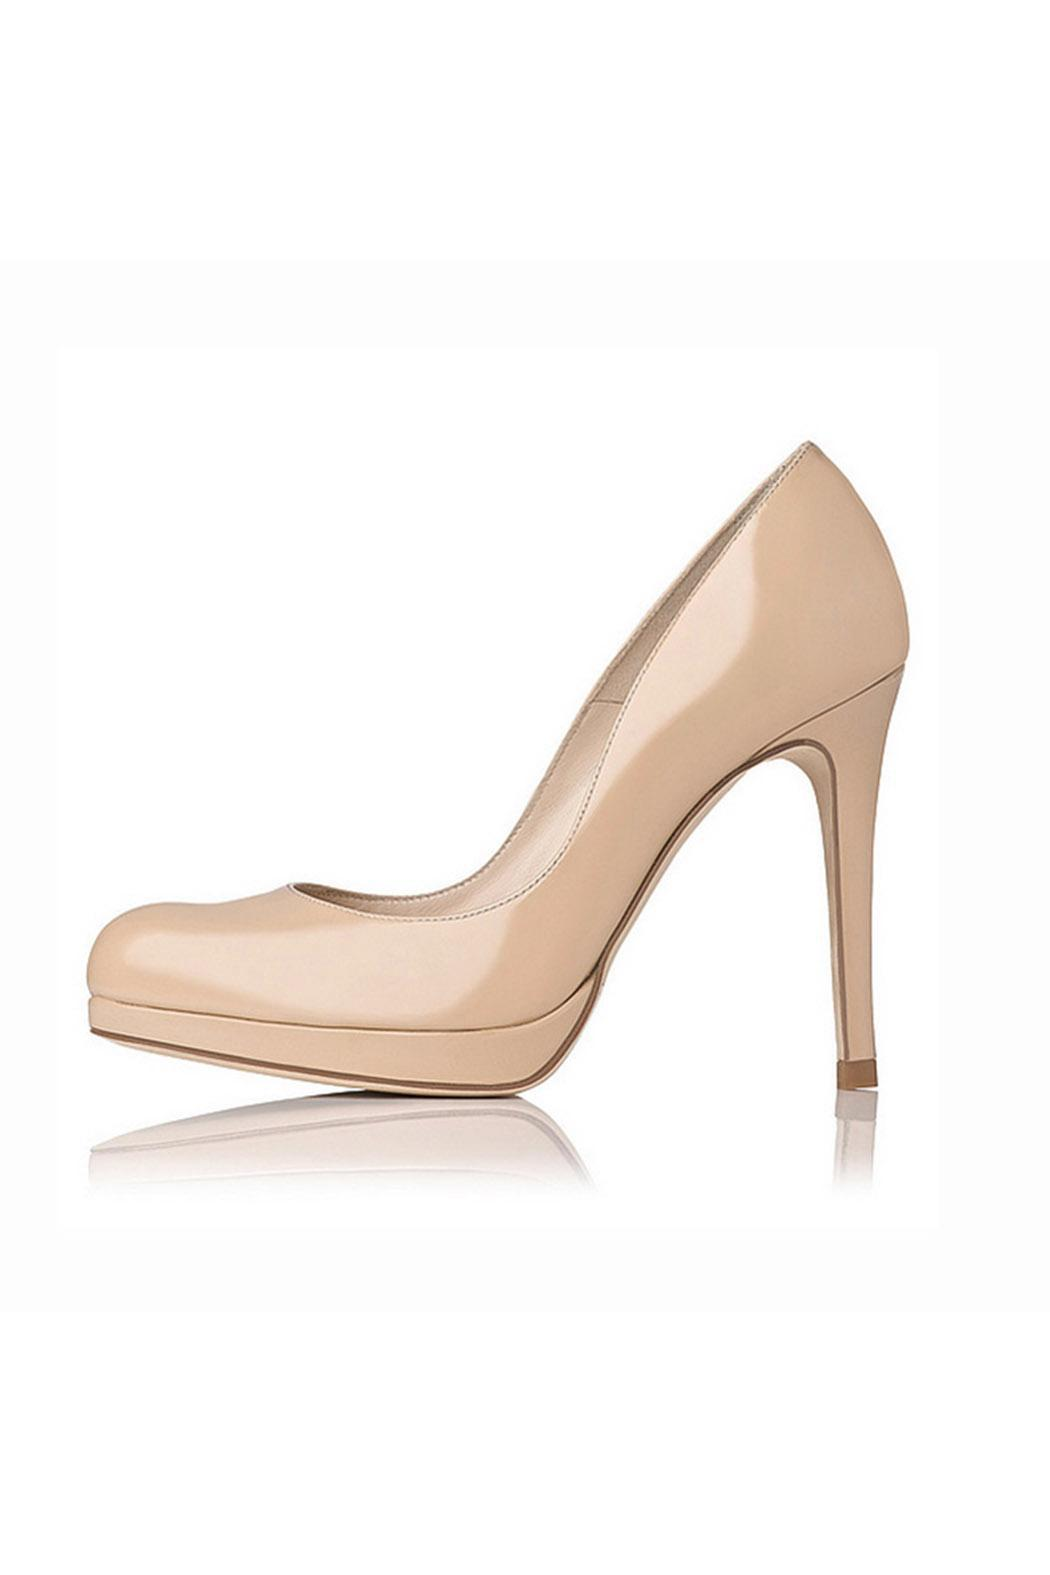 a663ab8d052 LK BENNETT Sledge Heel Taupe from Alexandria by Bishop Boutique ...